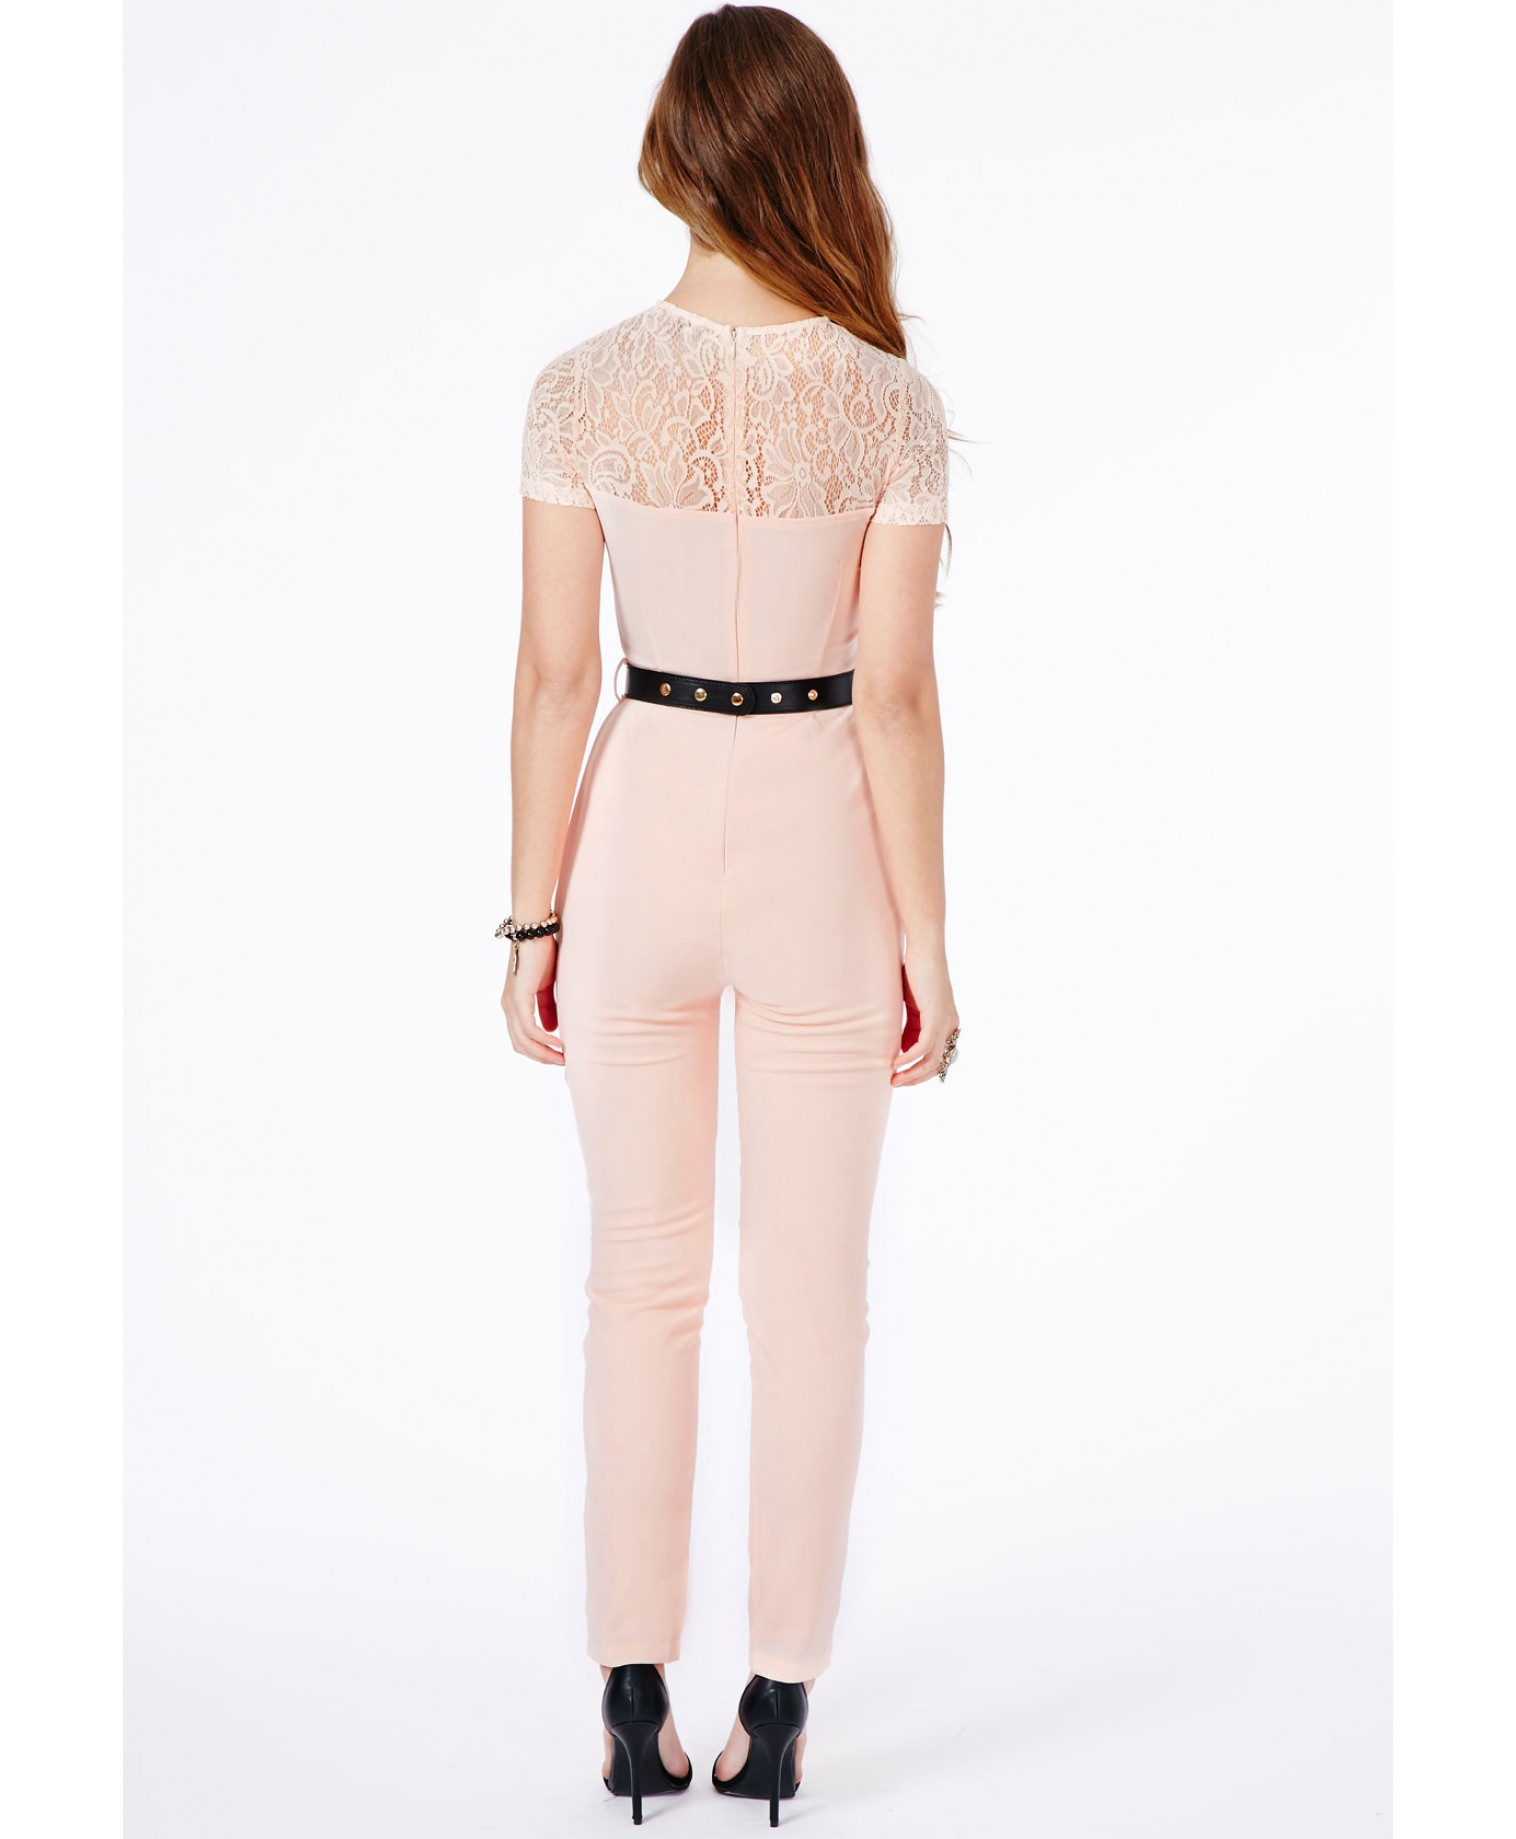 Missguided Roksana Belted Lace Detail Jumpsuit In Blush in Pink | Lyst